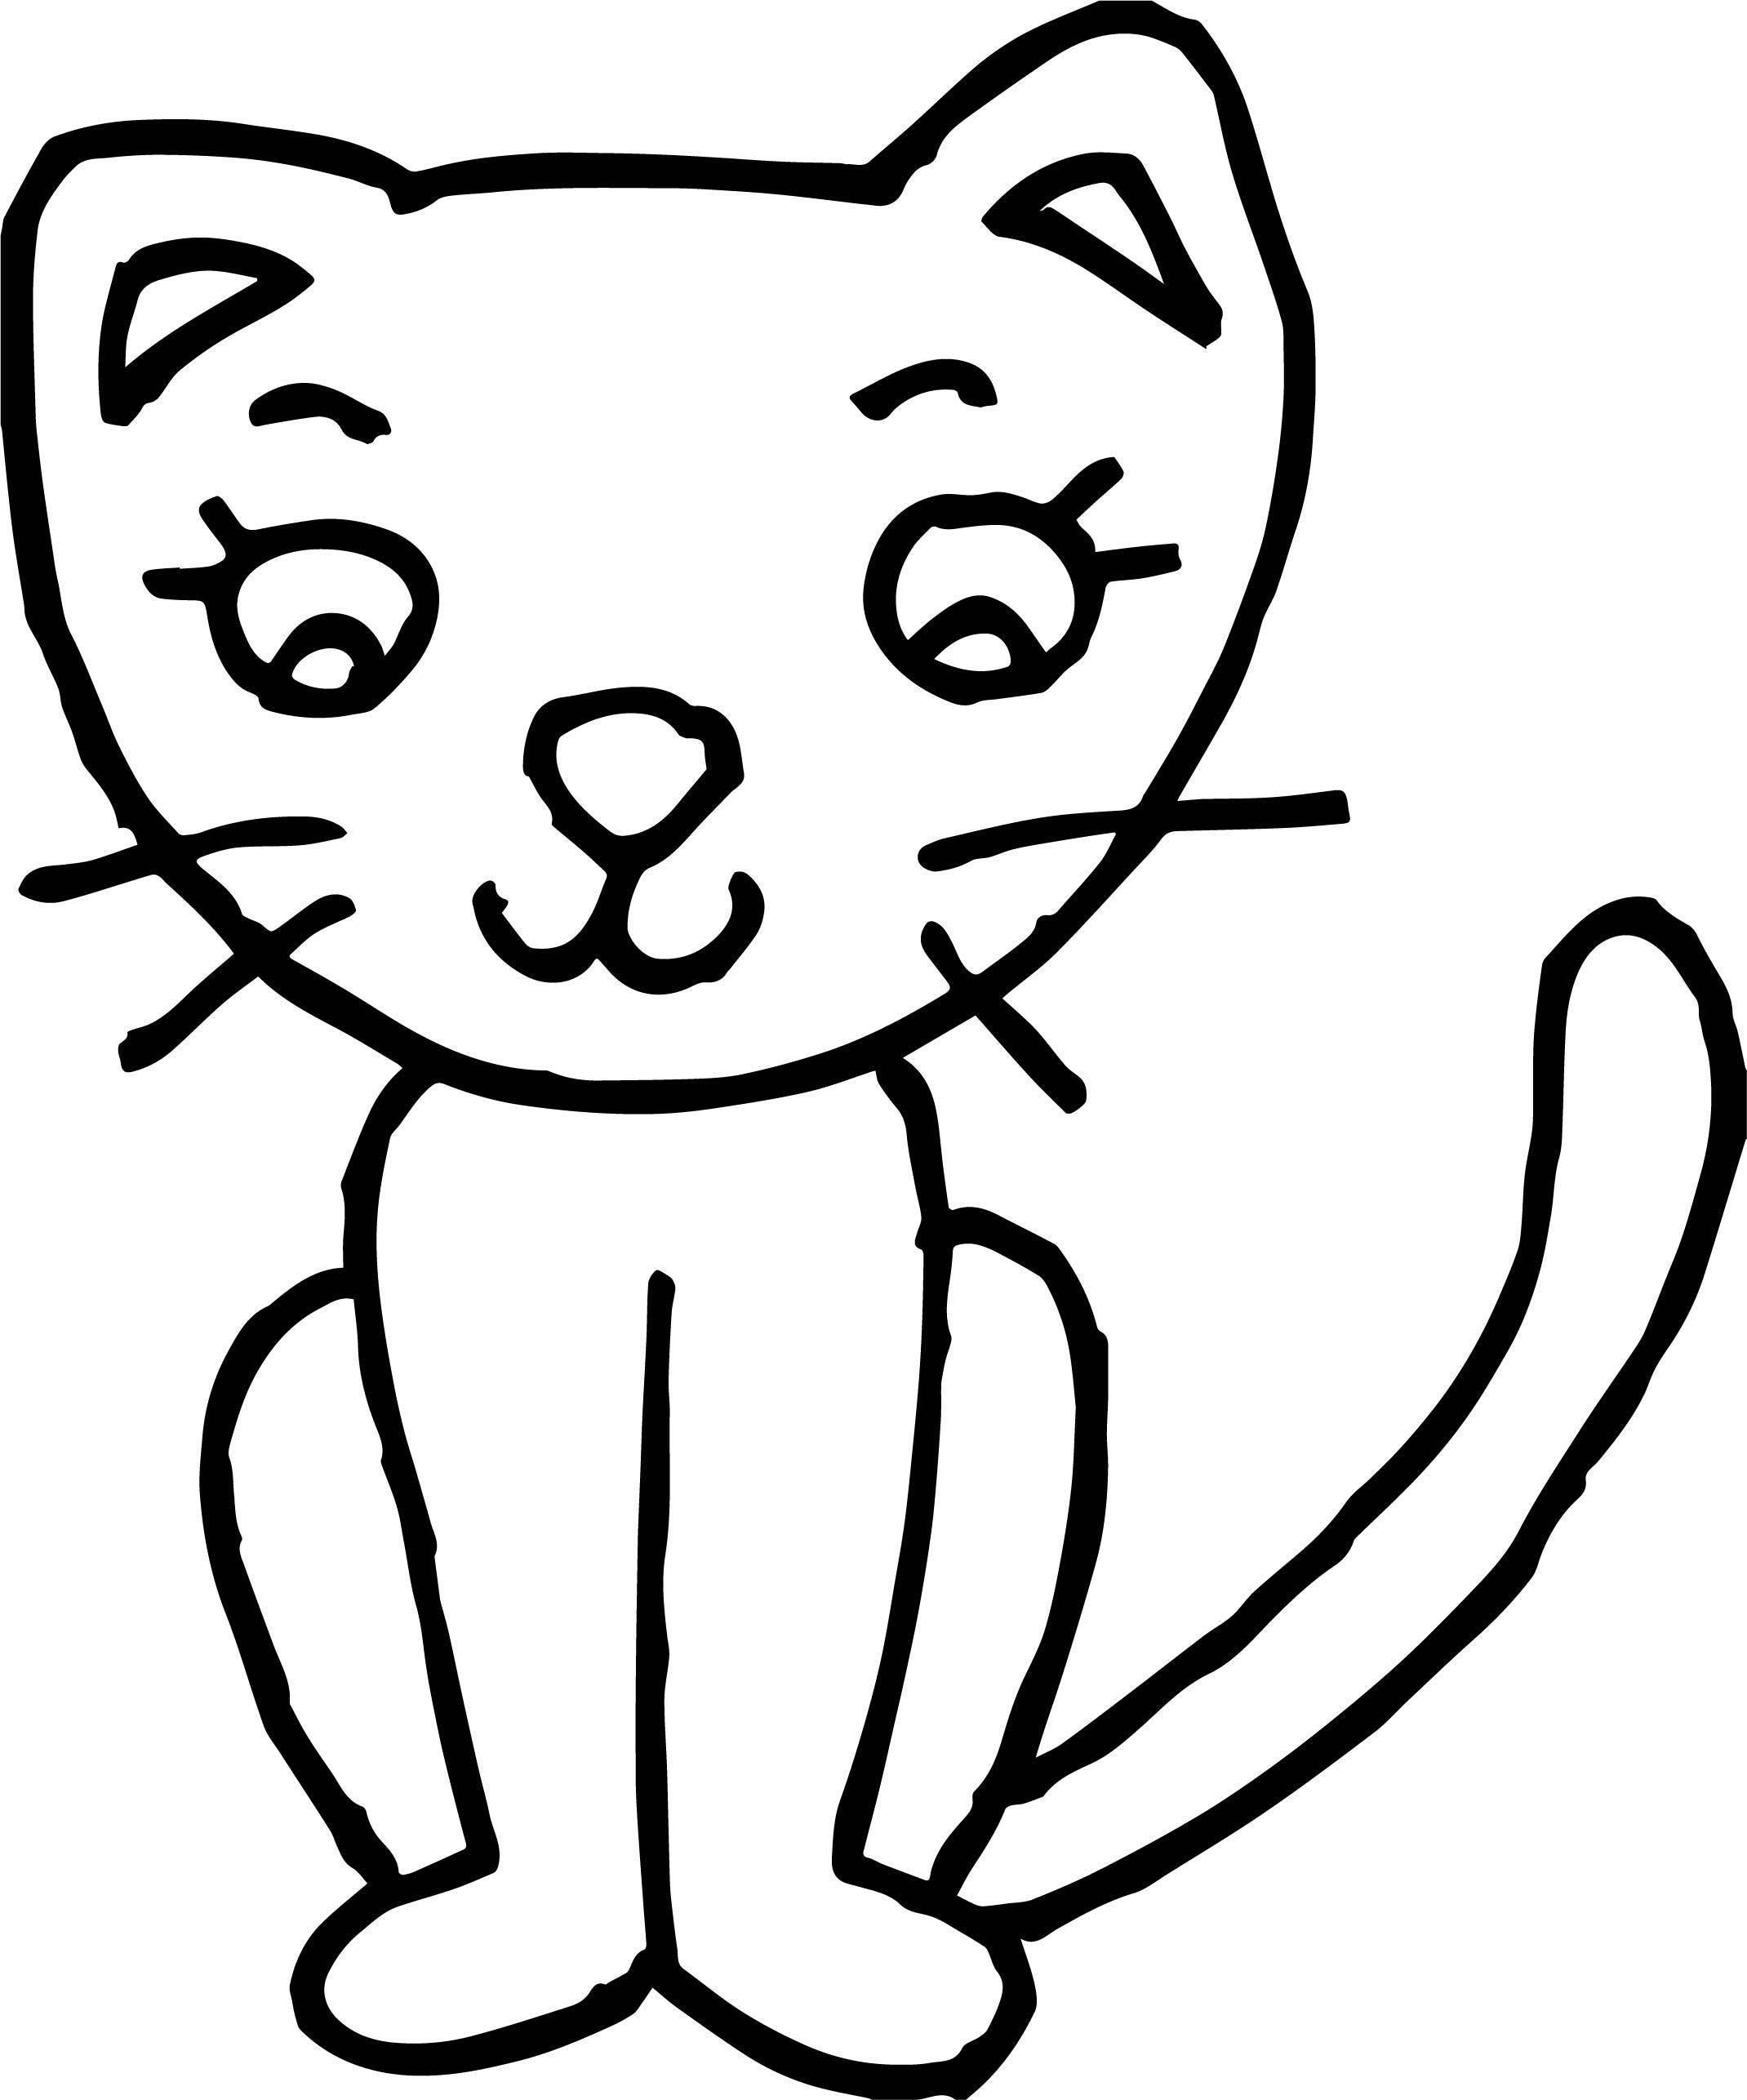 Grow Cat Coloring Page